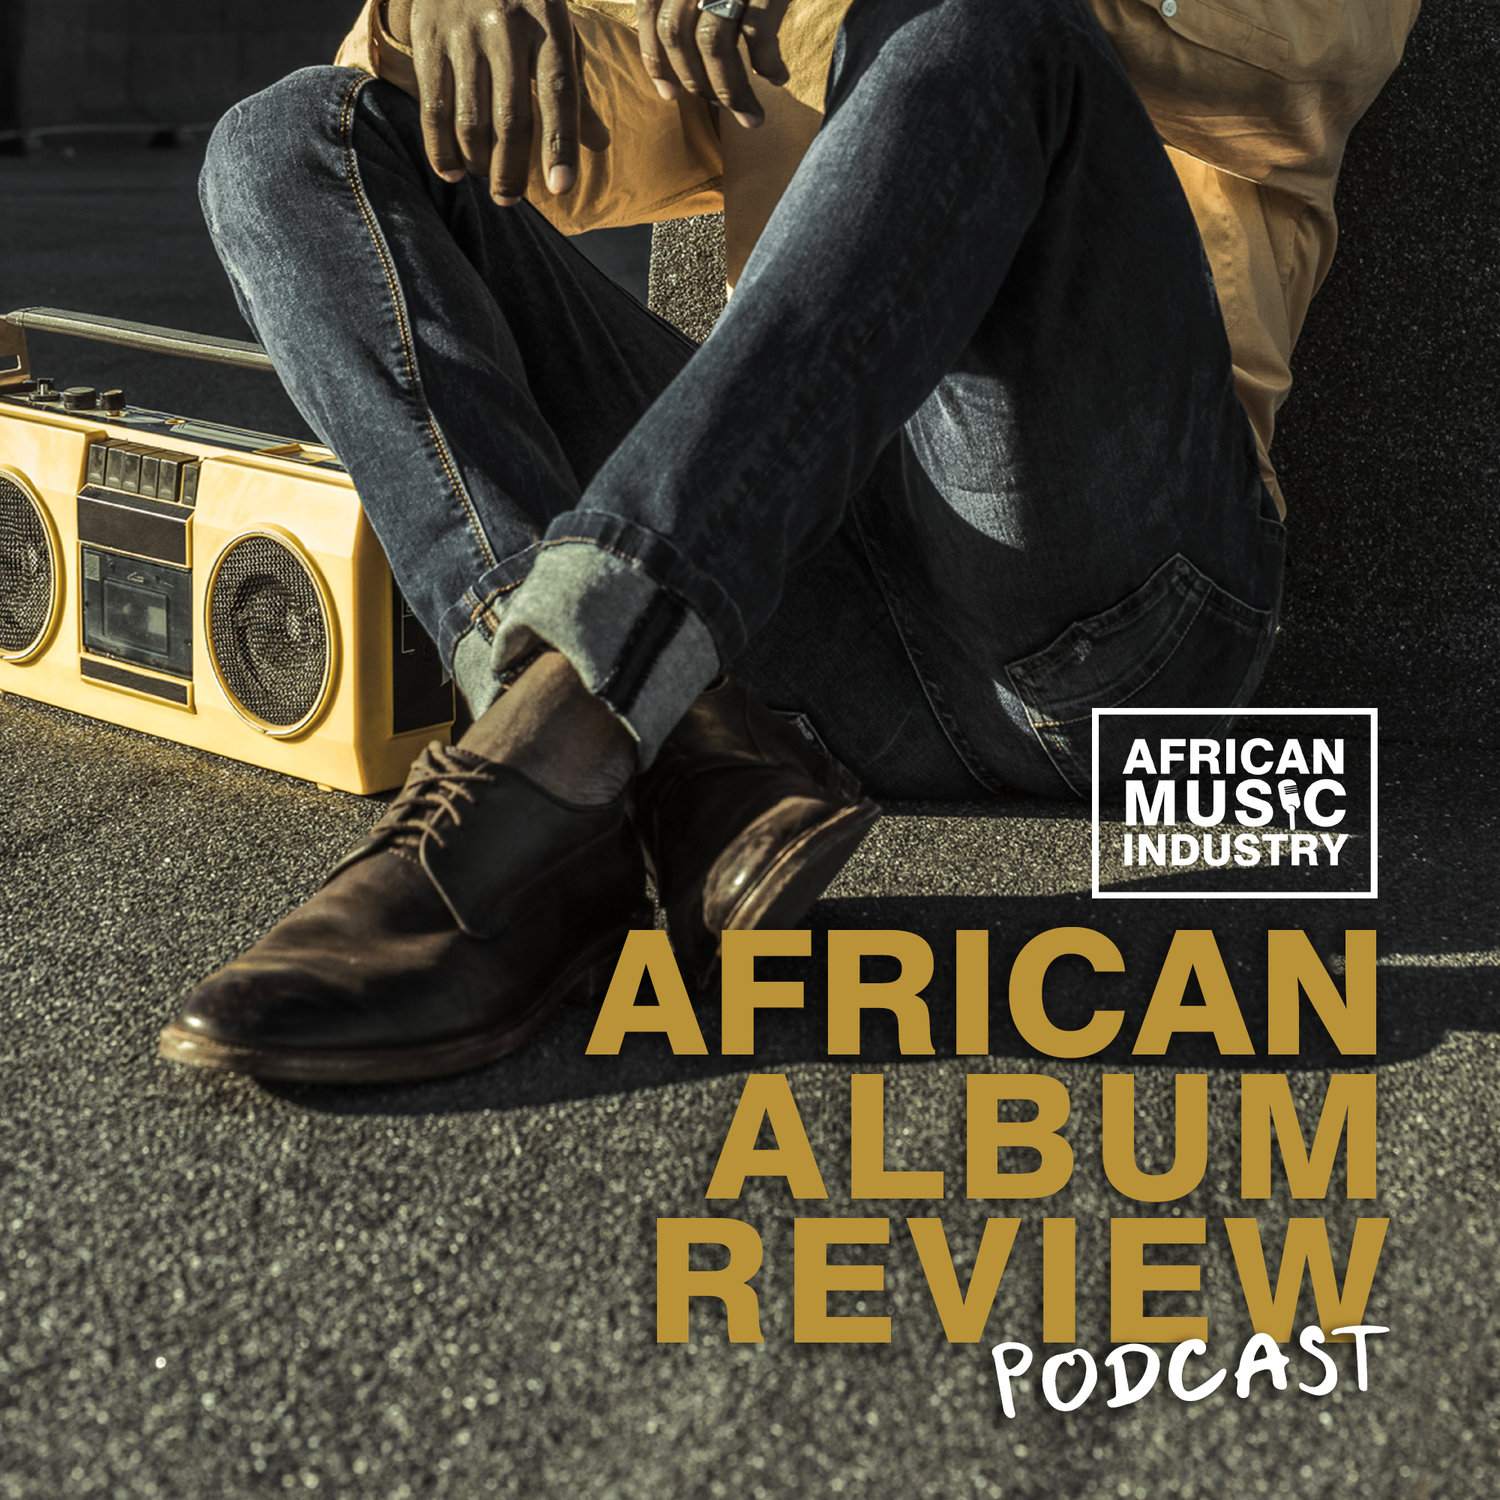 Apple Podcasts : Benin : Music : Episodes Podcast Charts